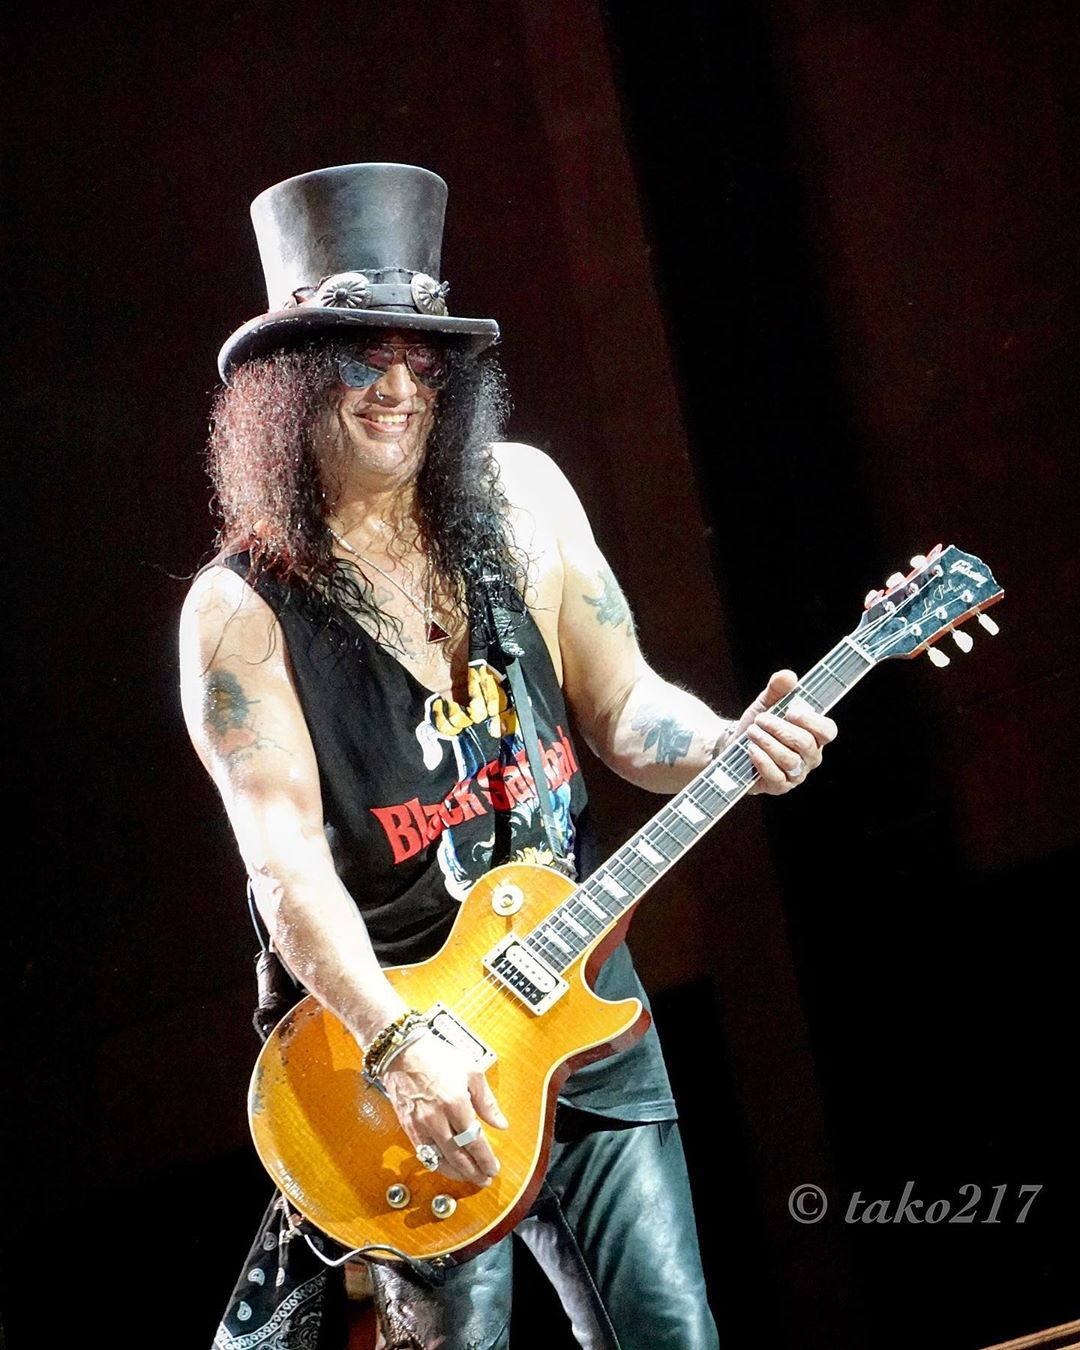 Slash france living the dream conspirators smkc florionopolis 2019 tage kennedy kerns fitz tour